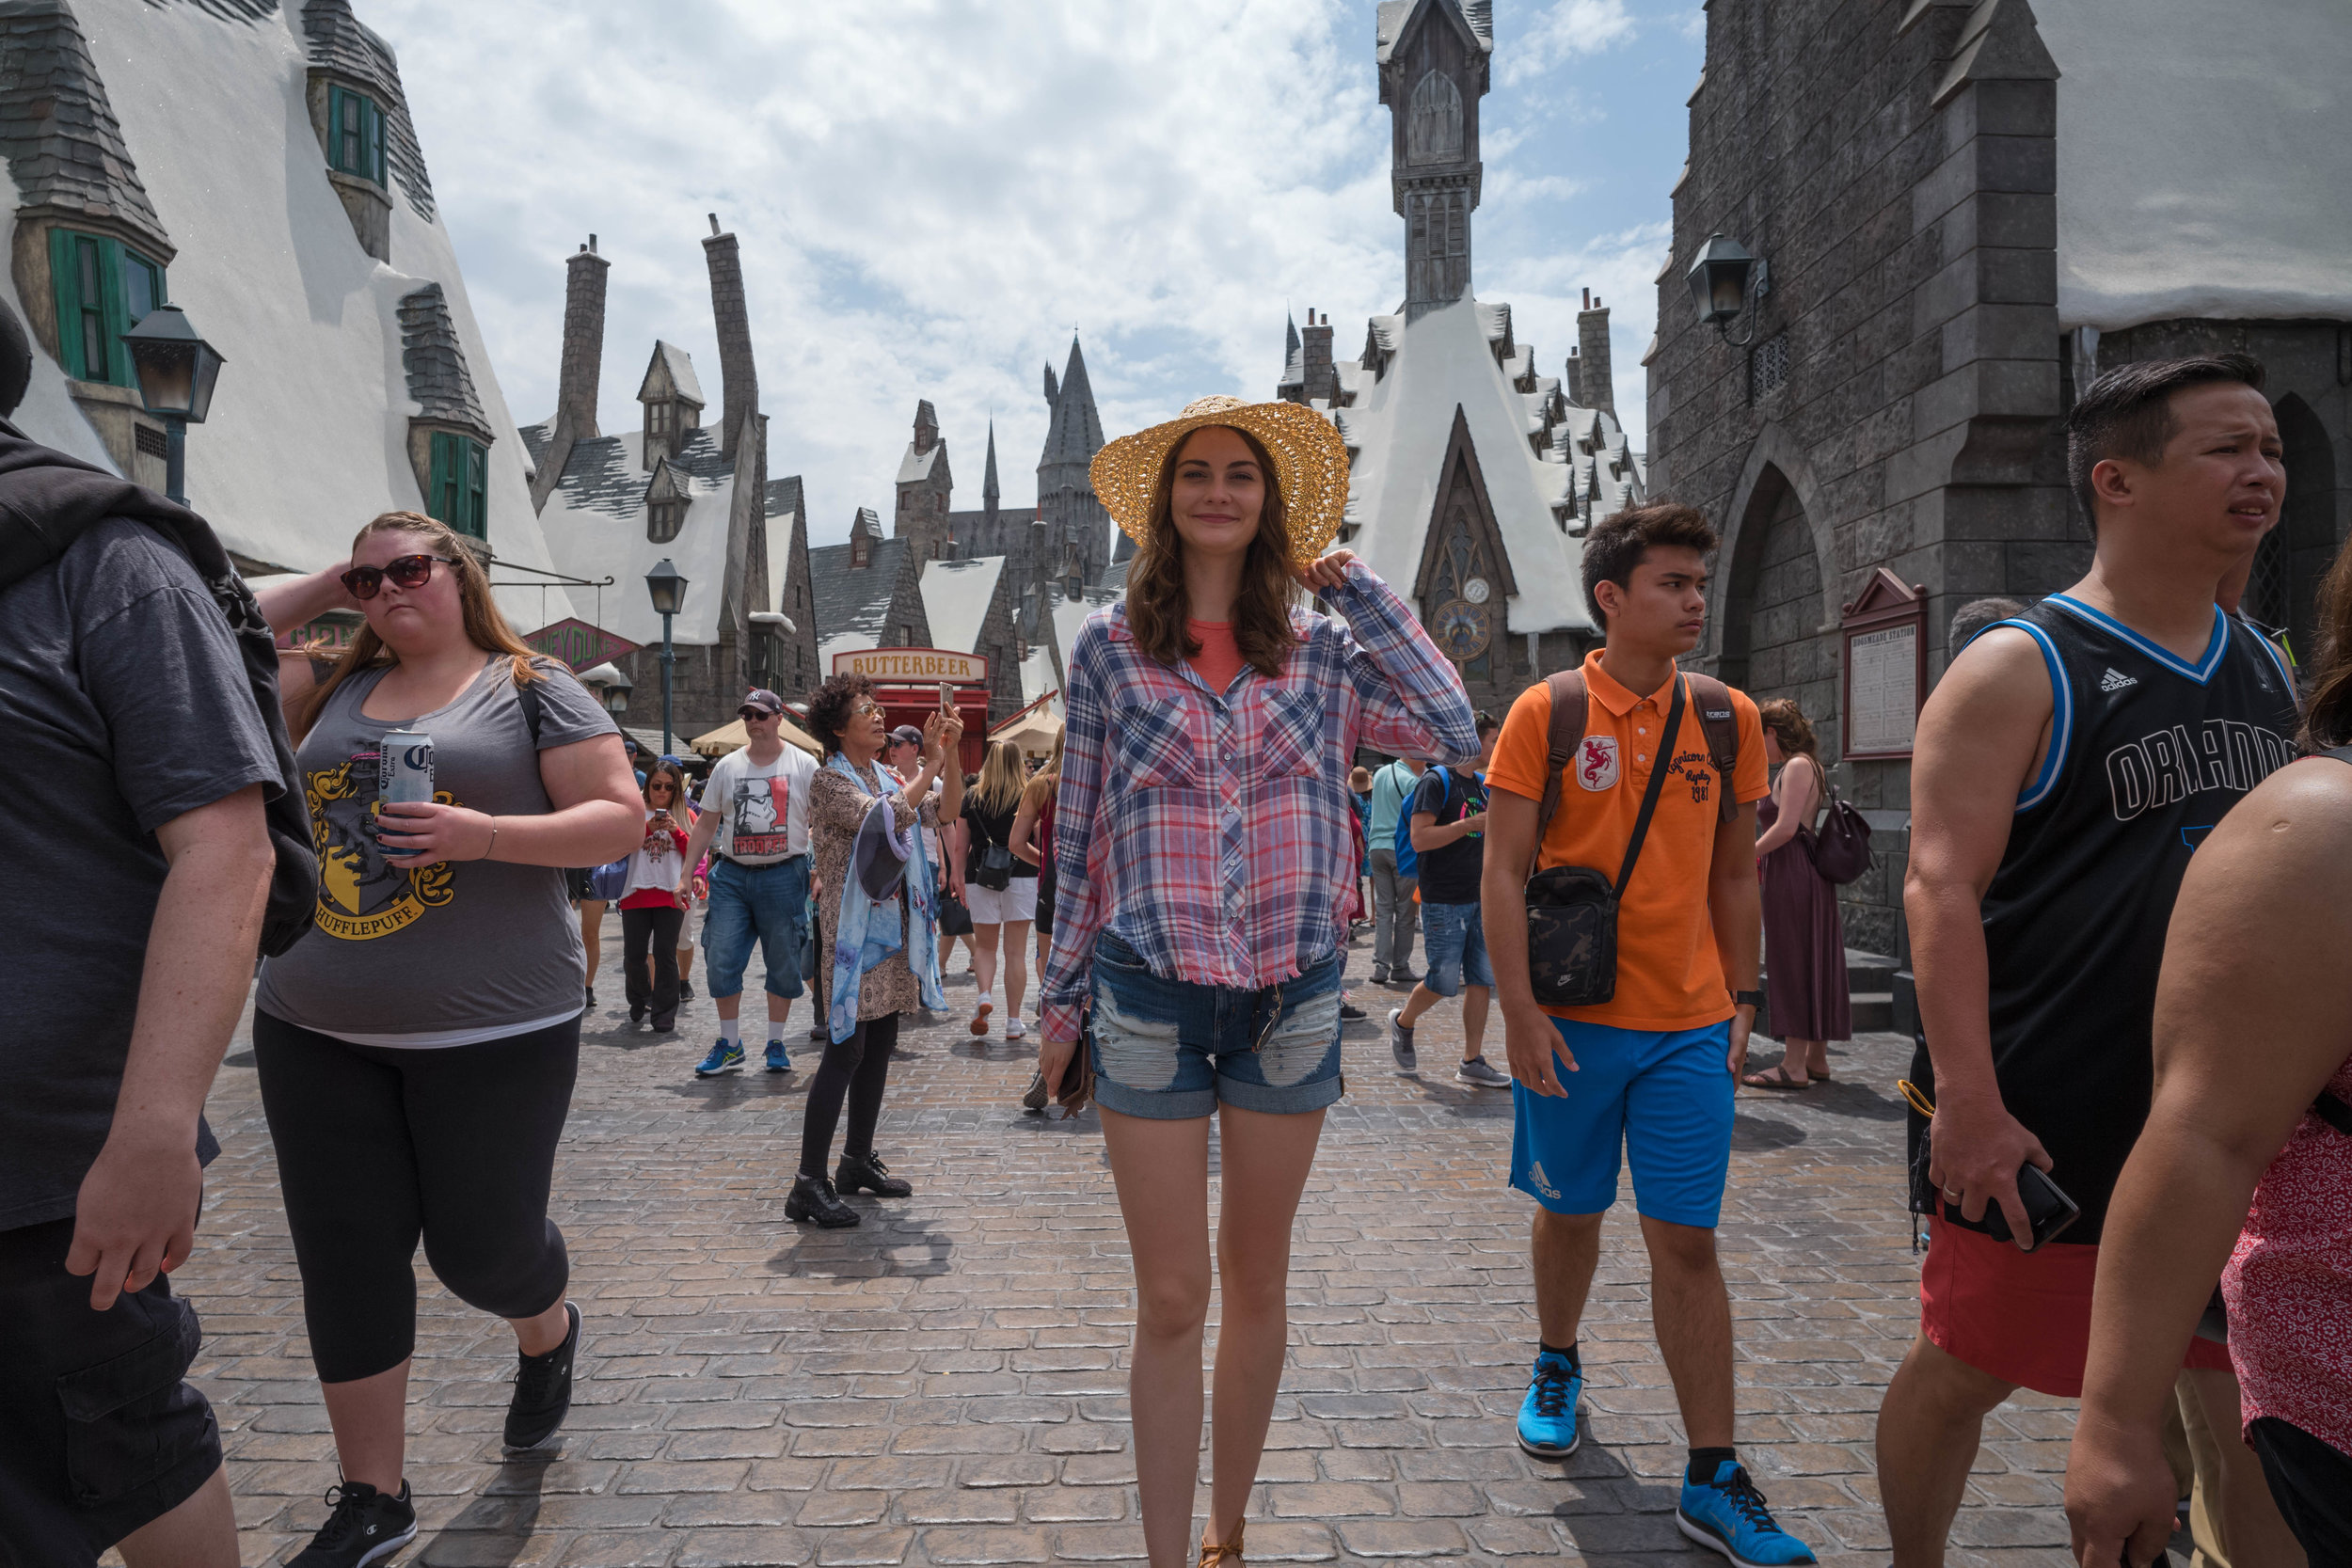 First stop, Harry Potter Land - Waist level shot with live view - Leica 21mm f/3.4 Super Elmar ASPH